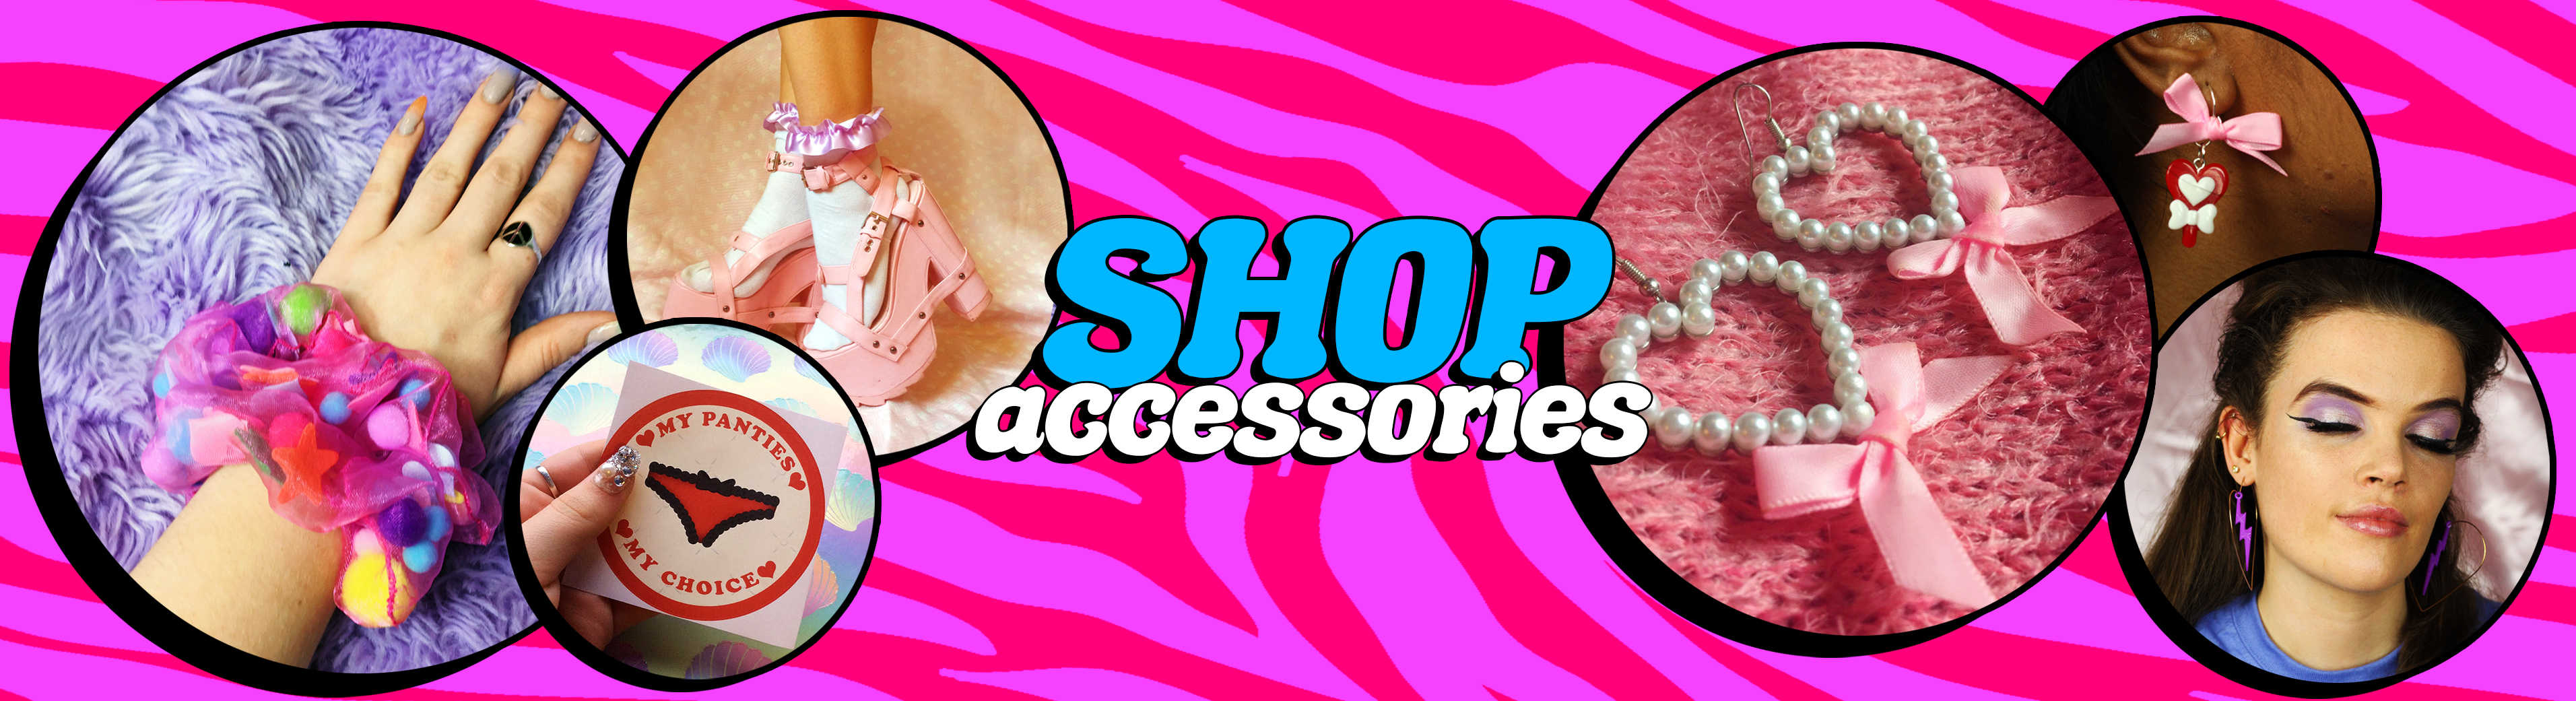 big pink boutique shop accessories earrings hair scrunchies socks stickers